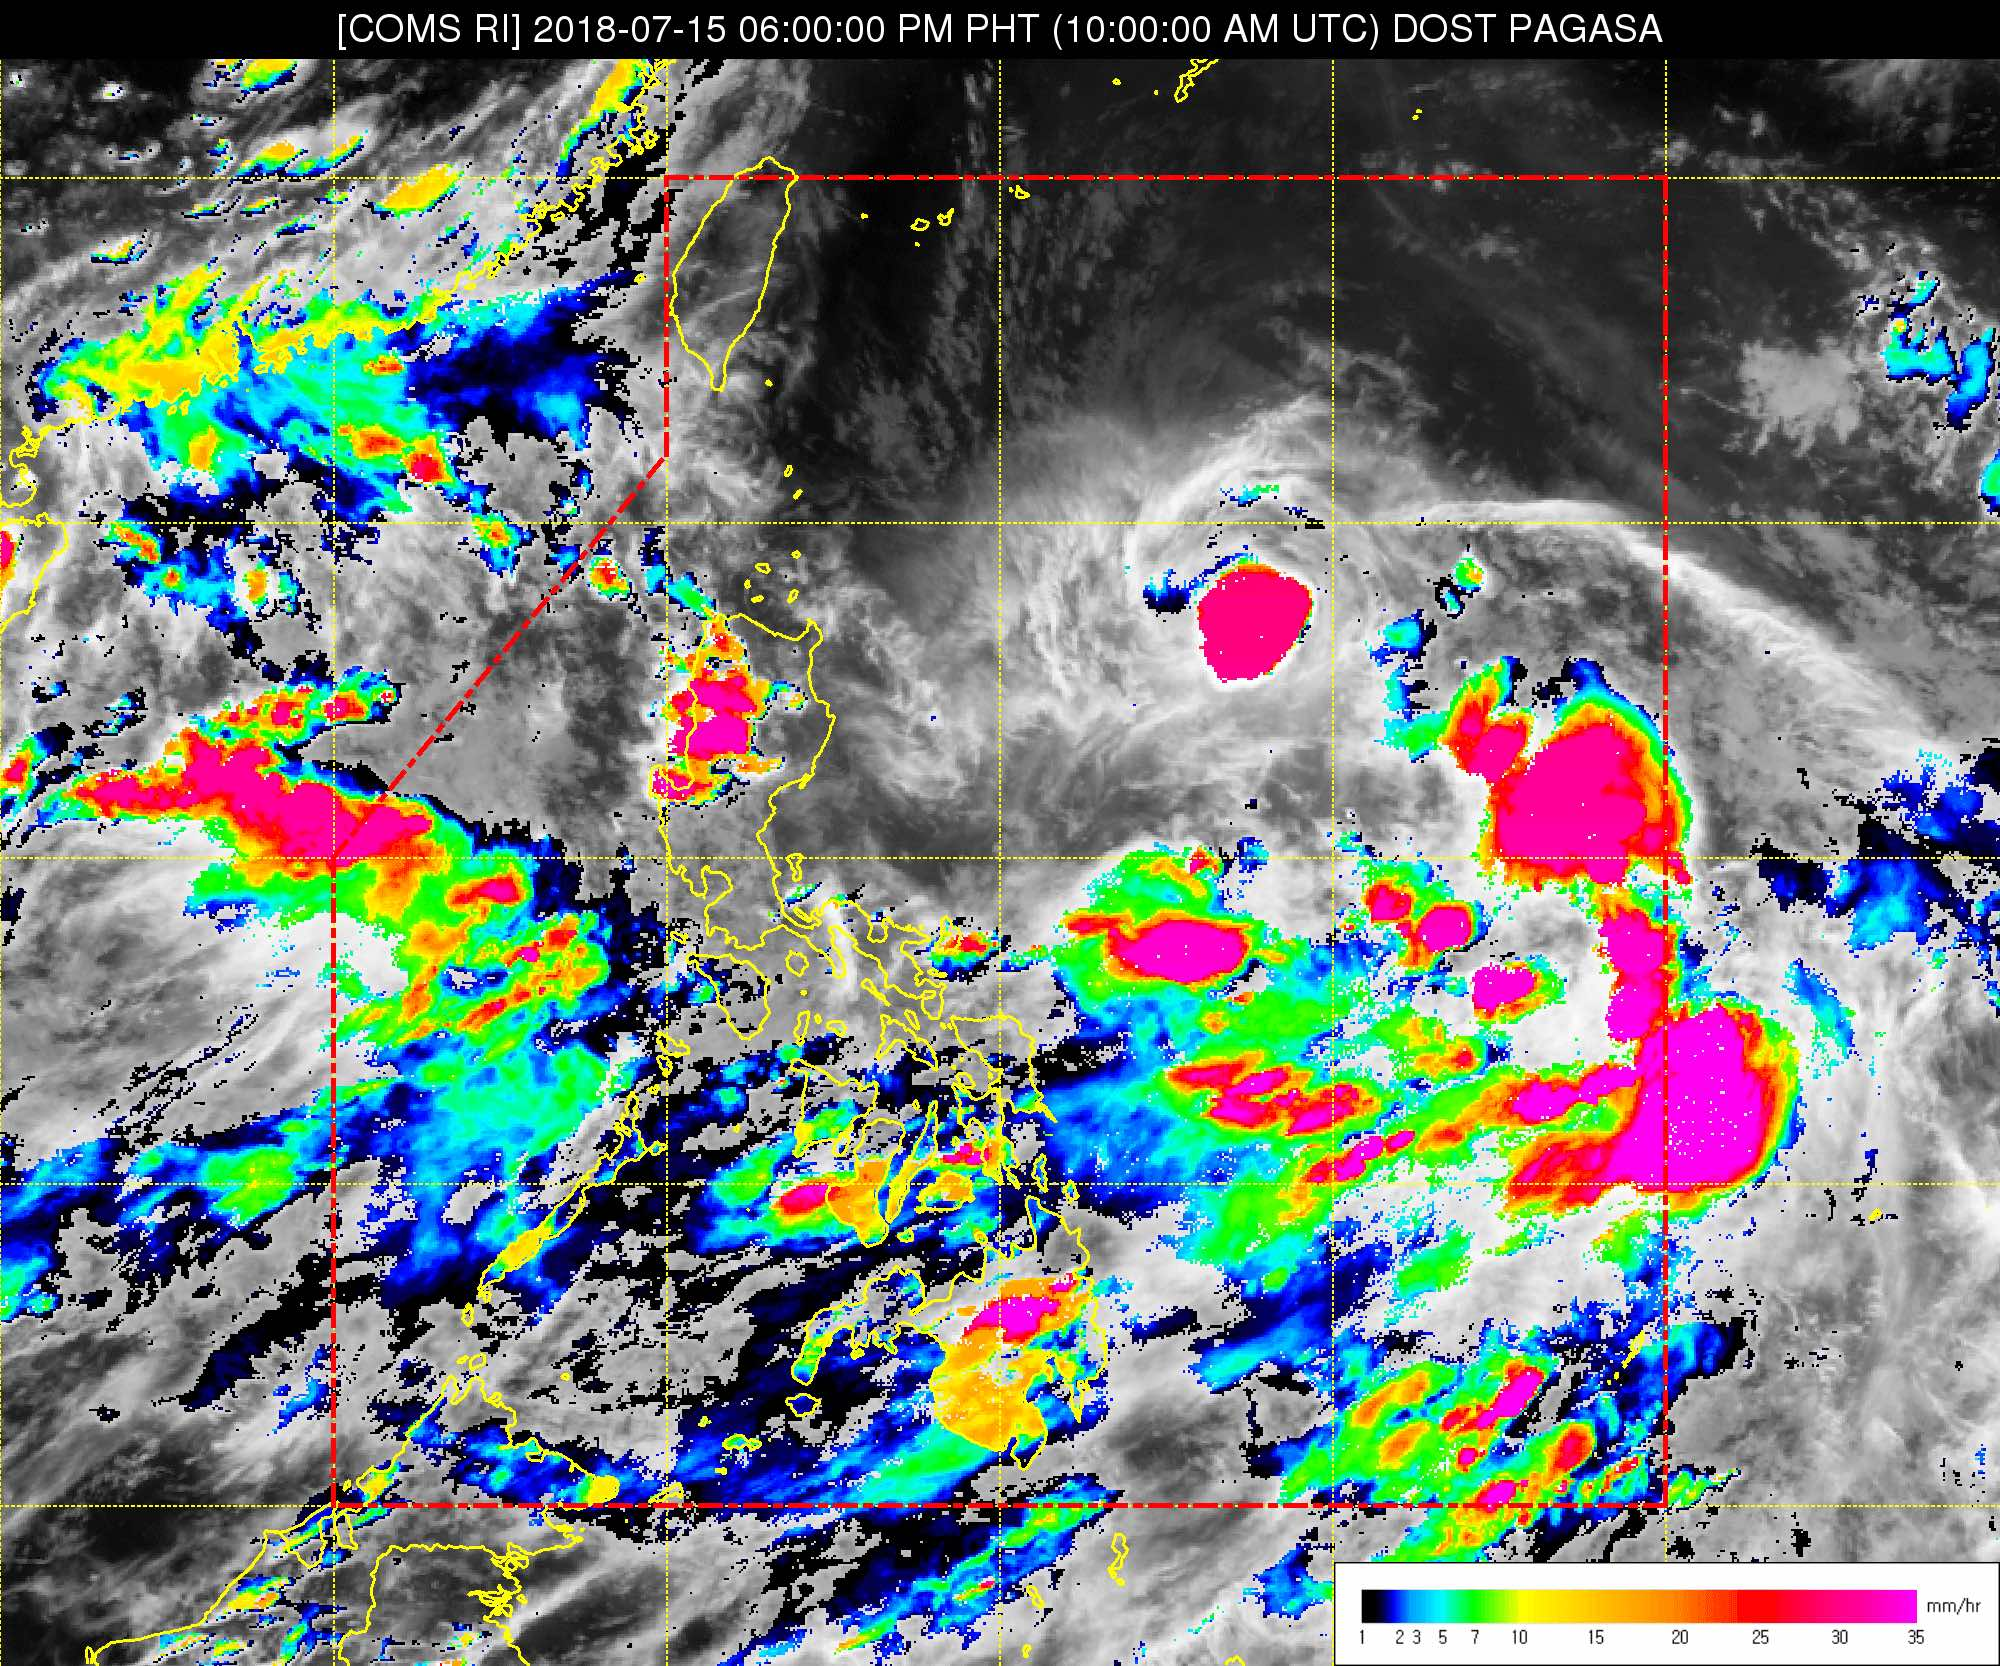 LPA could become tropical depression on July 15 or 16